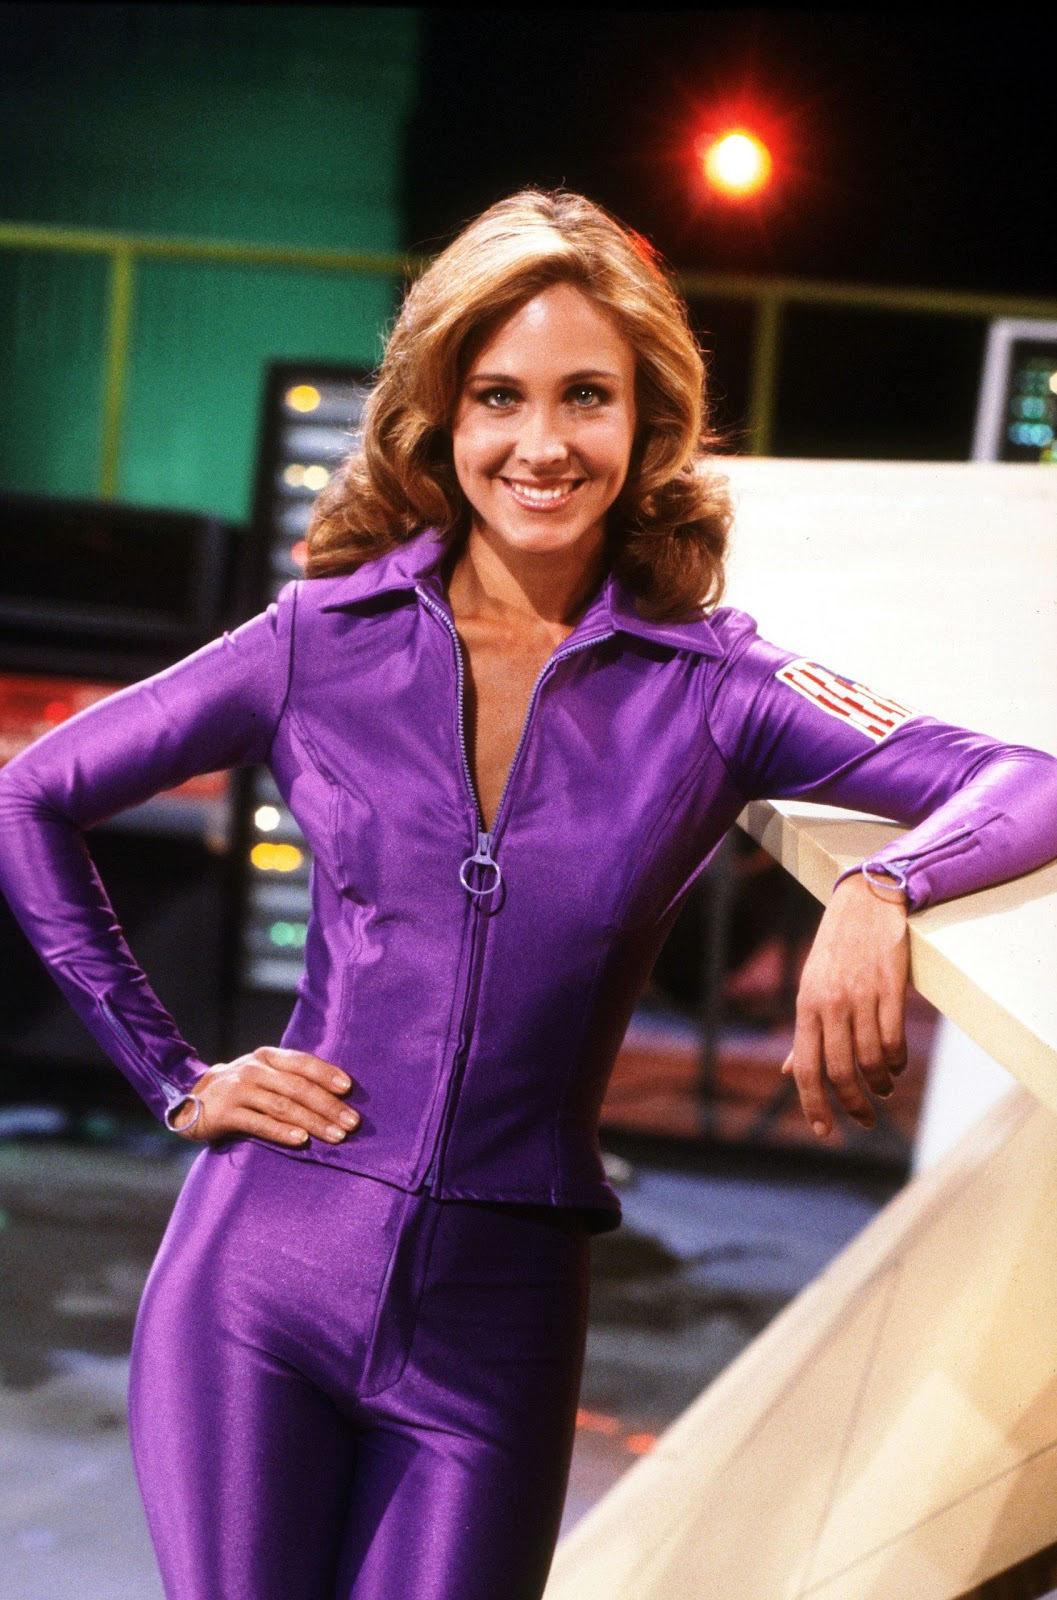 Erin Gray in a tight purple jumpsuit for her movie character